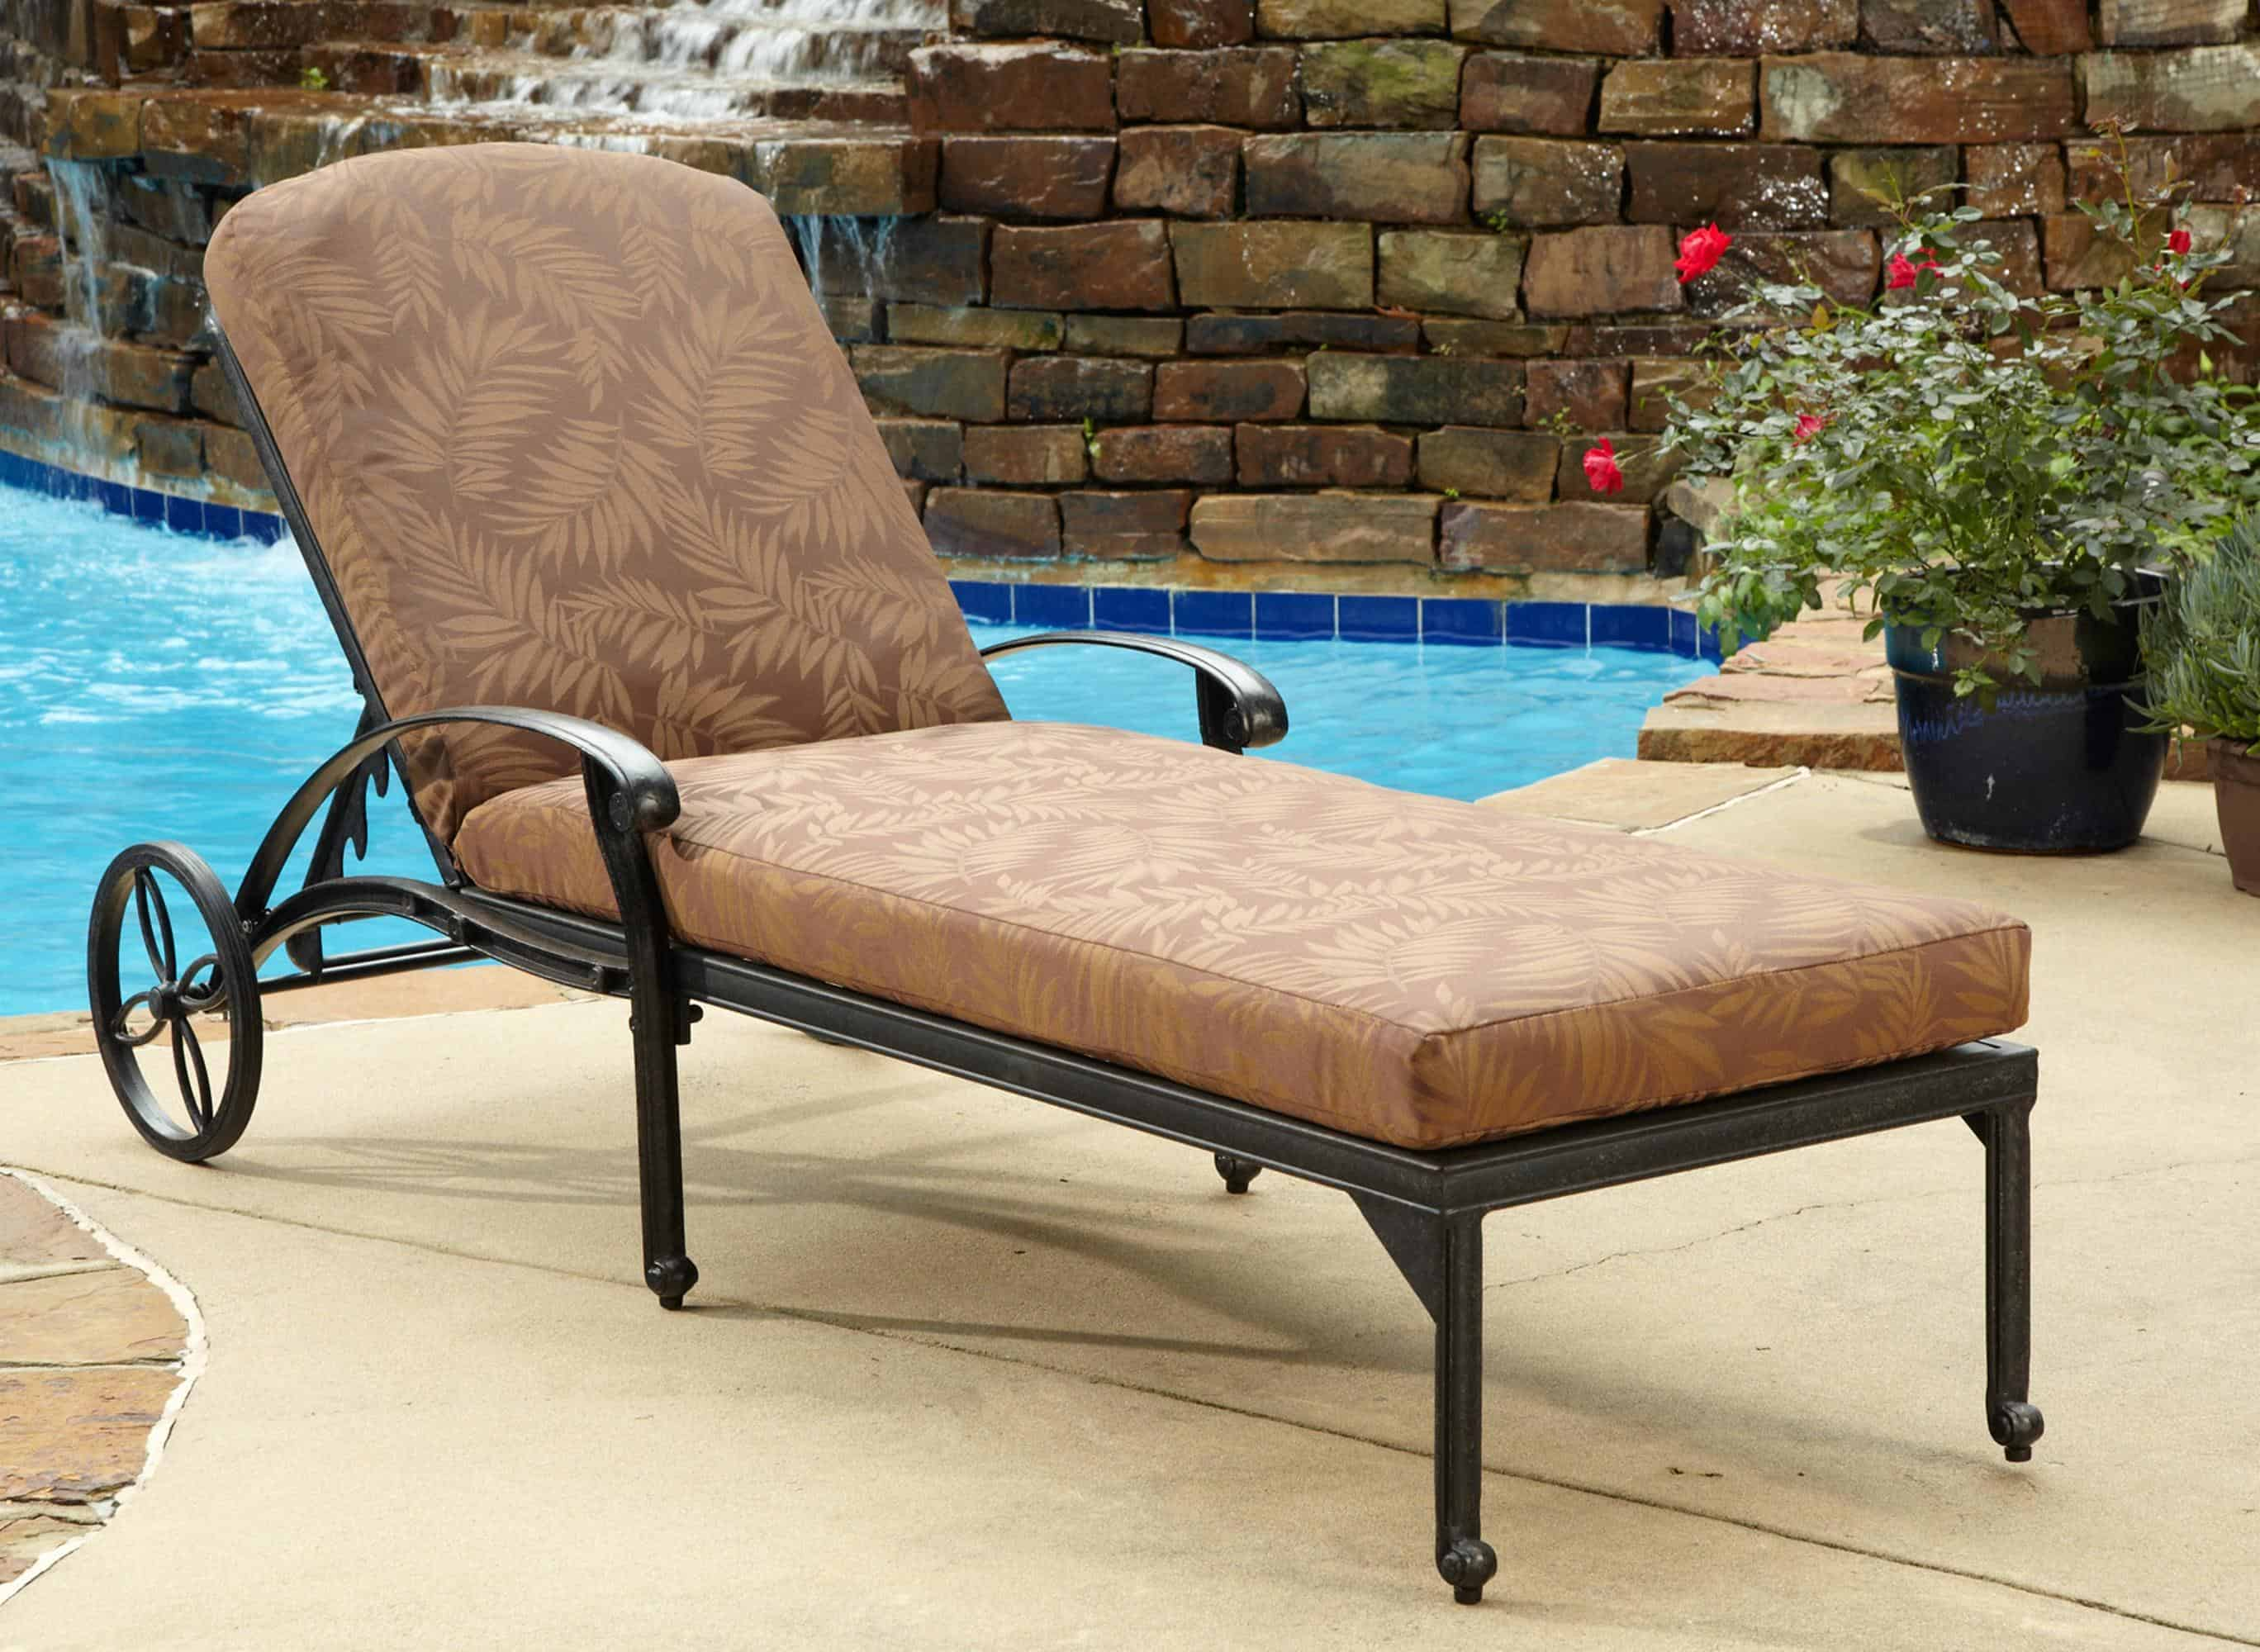 Ethnic outdoor chairs and loungers